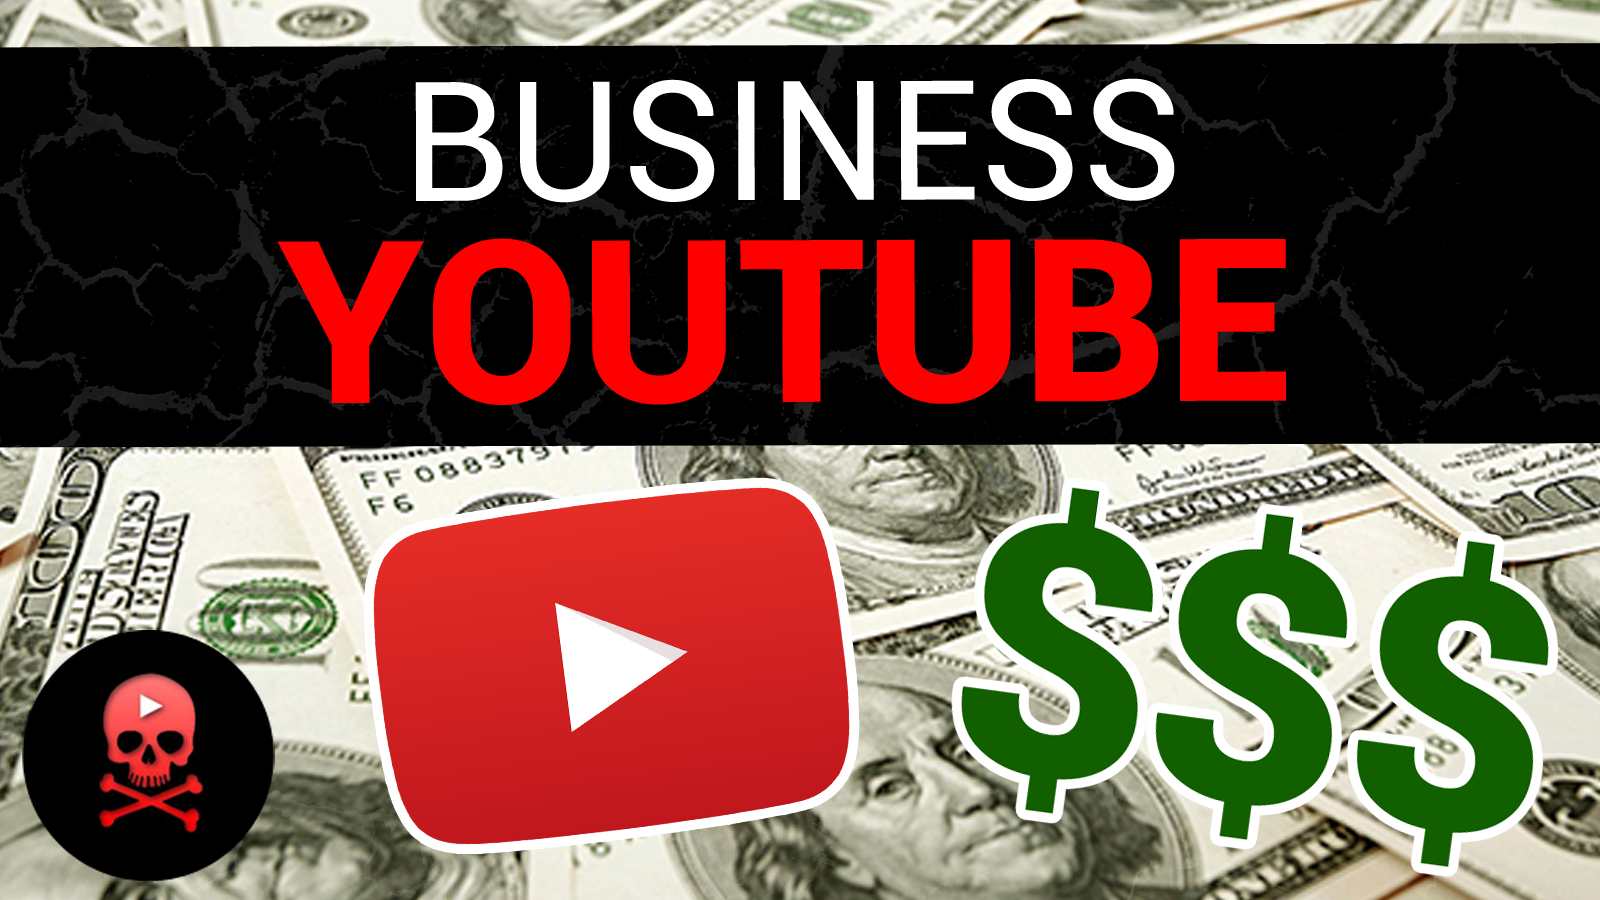 créer un business sur youtube